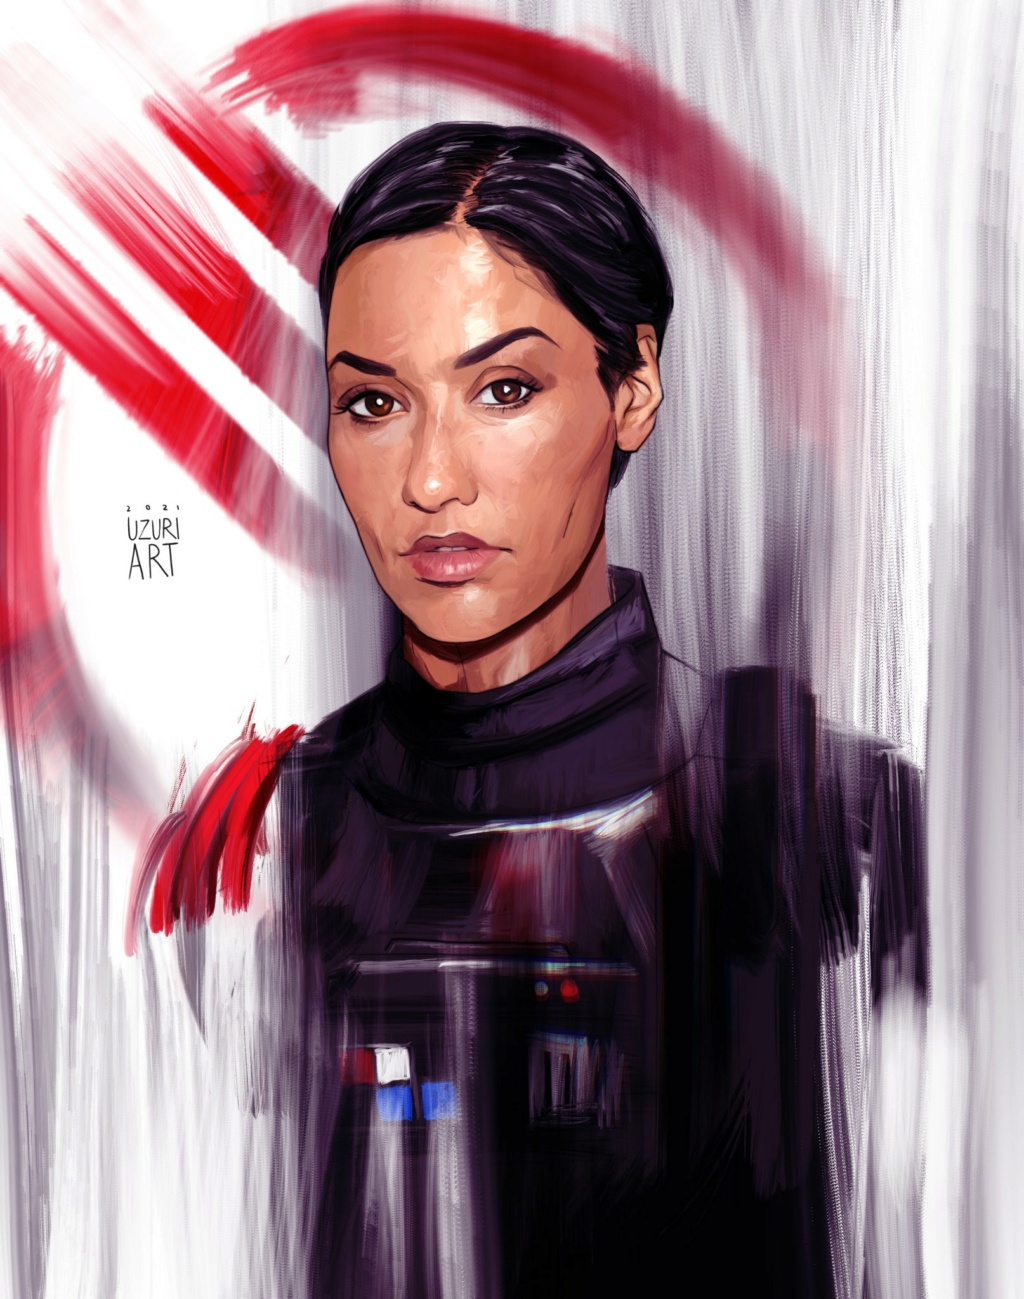 Digital Art par UZURI ART - Star Wars Uzuri_33